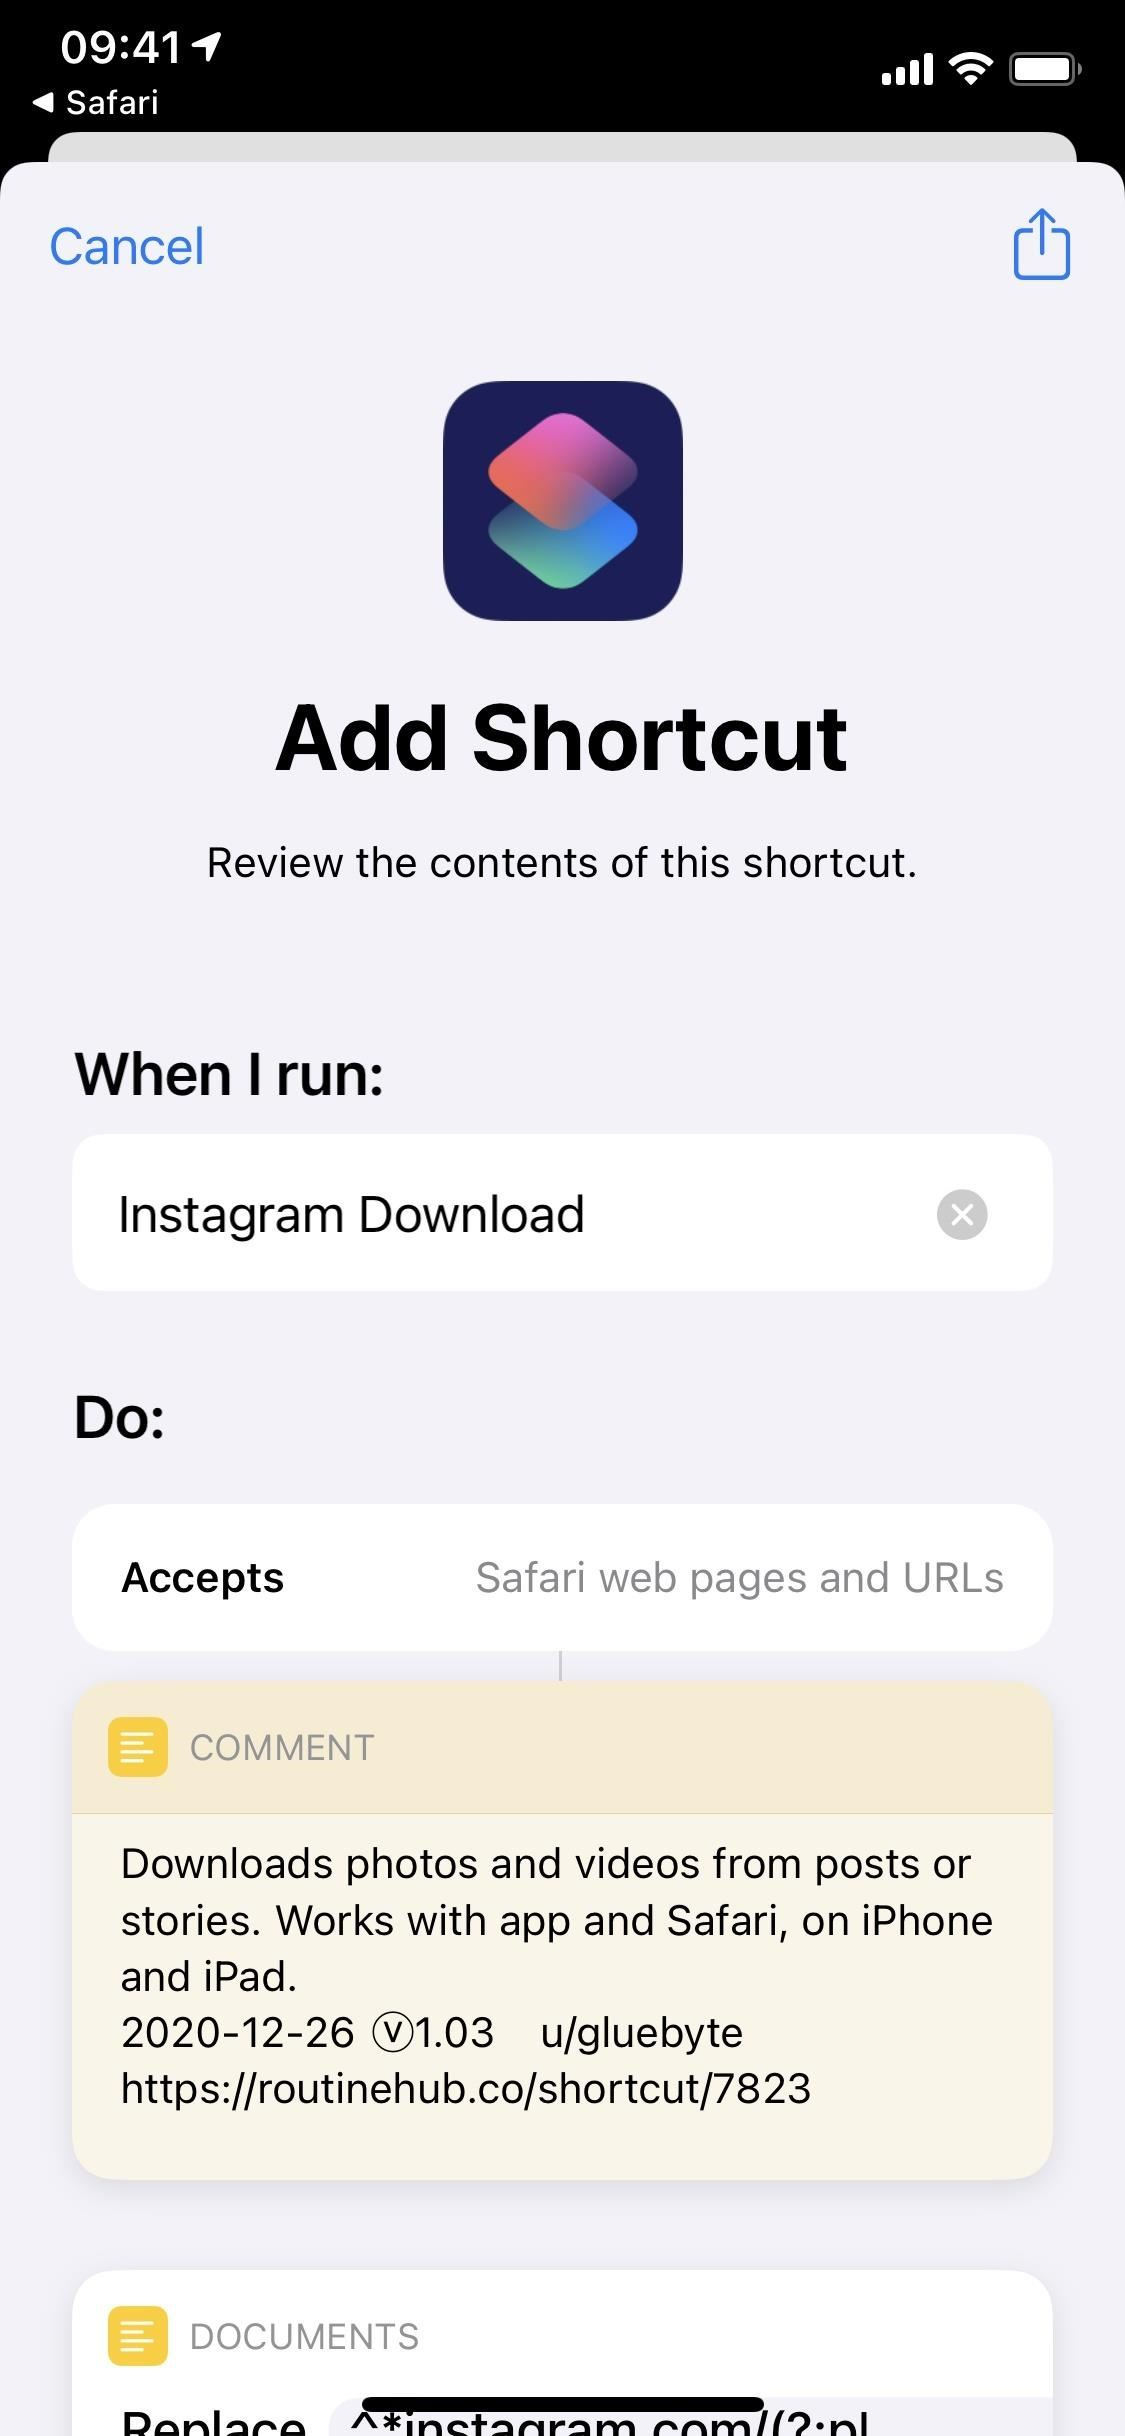 Download photos and videos from Instagram posts and stories with this shortcut for iPhone